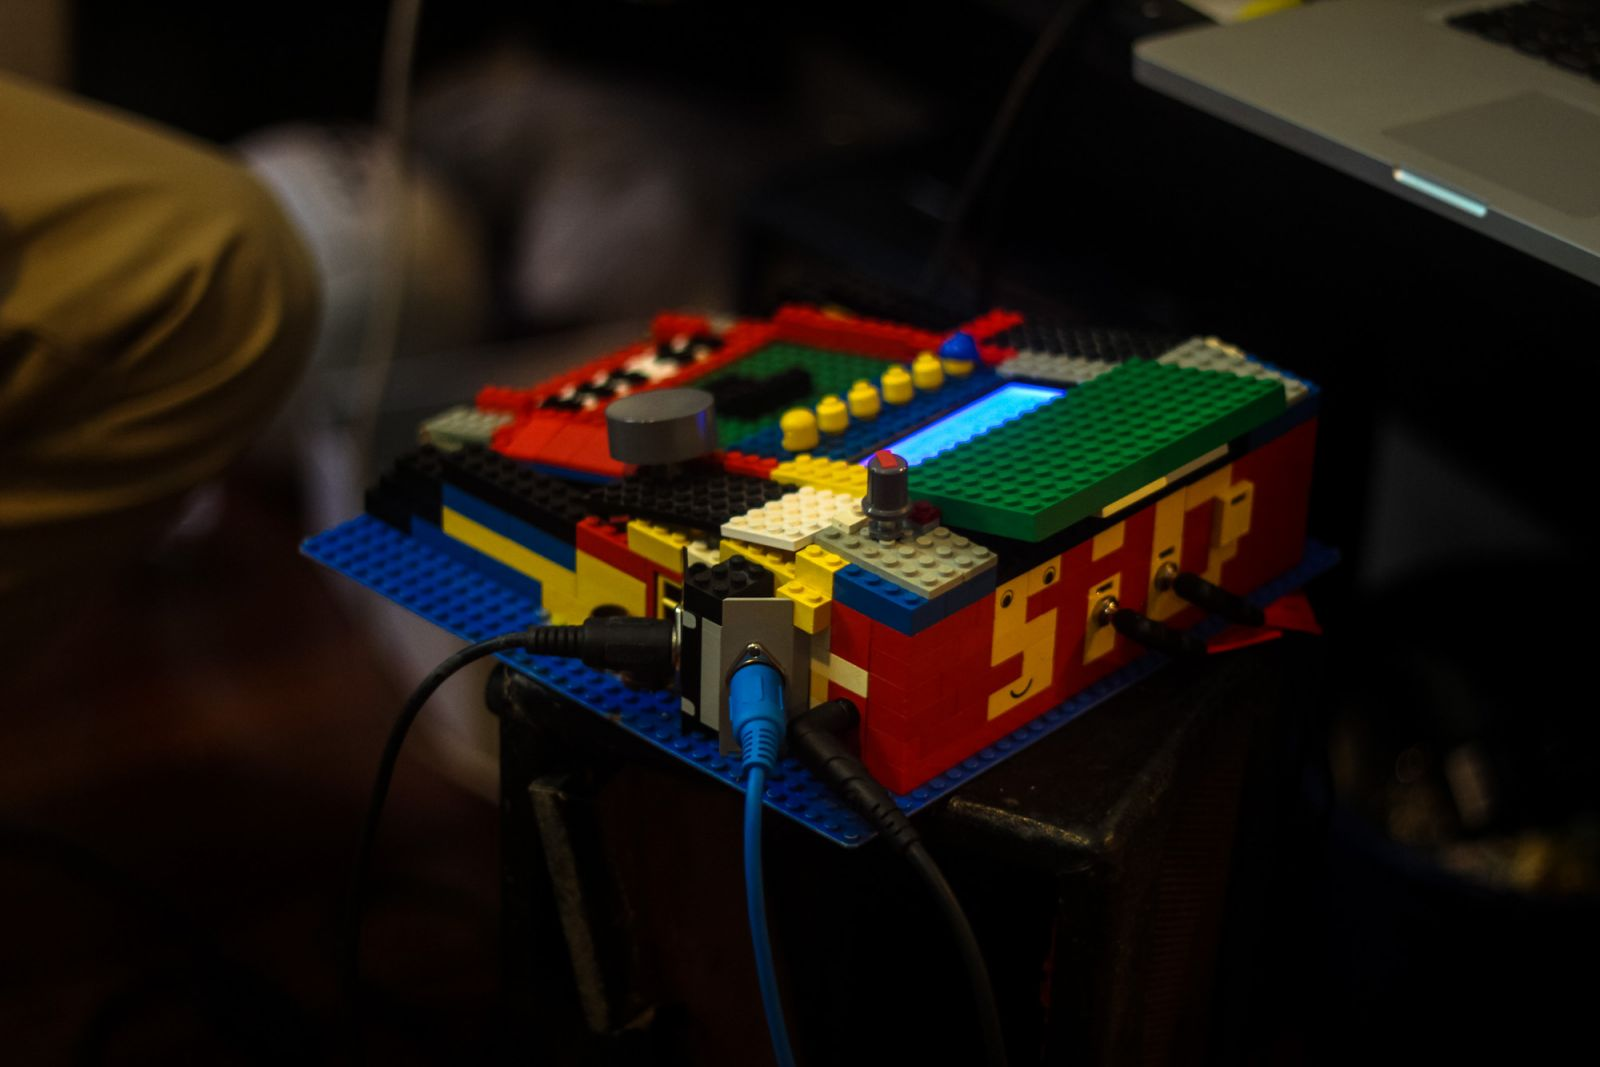 Midibox Sid LEGO mid design